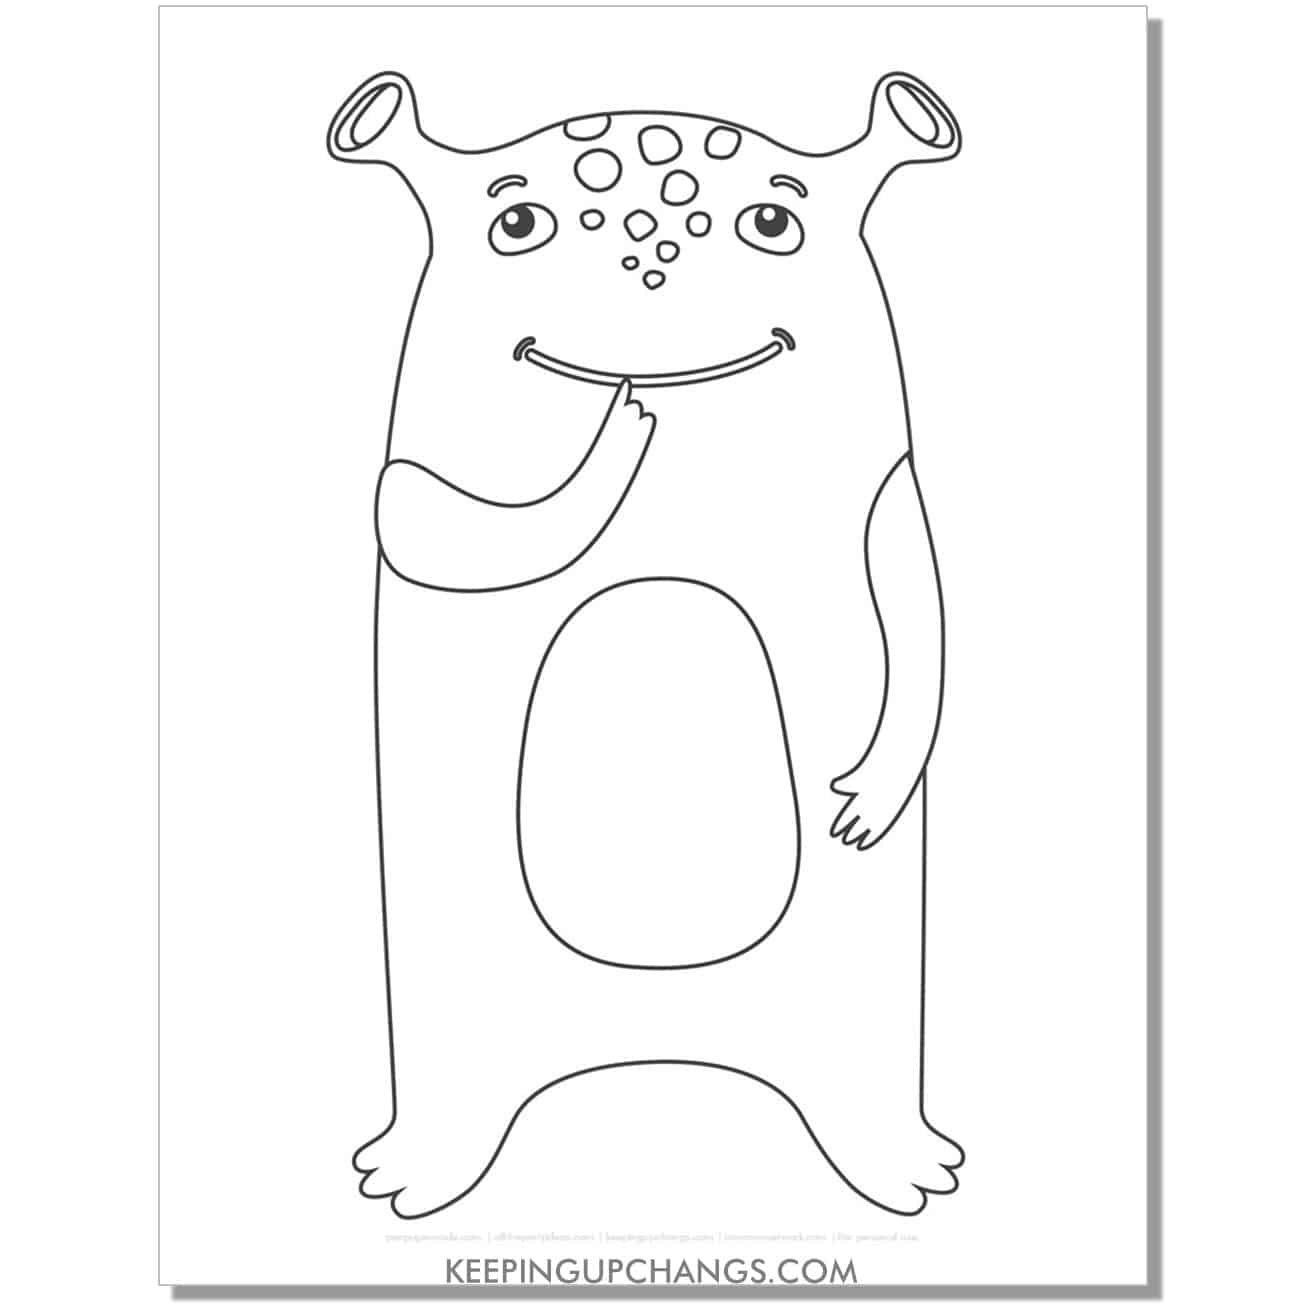 free friendly alien monster coloring page.